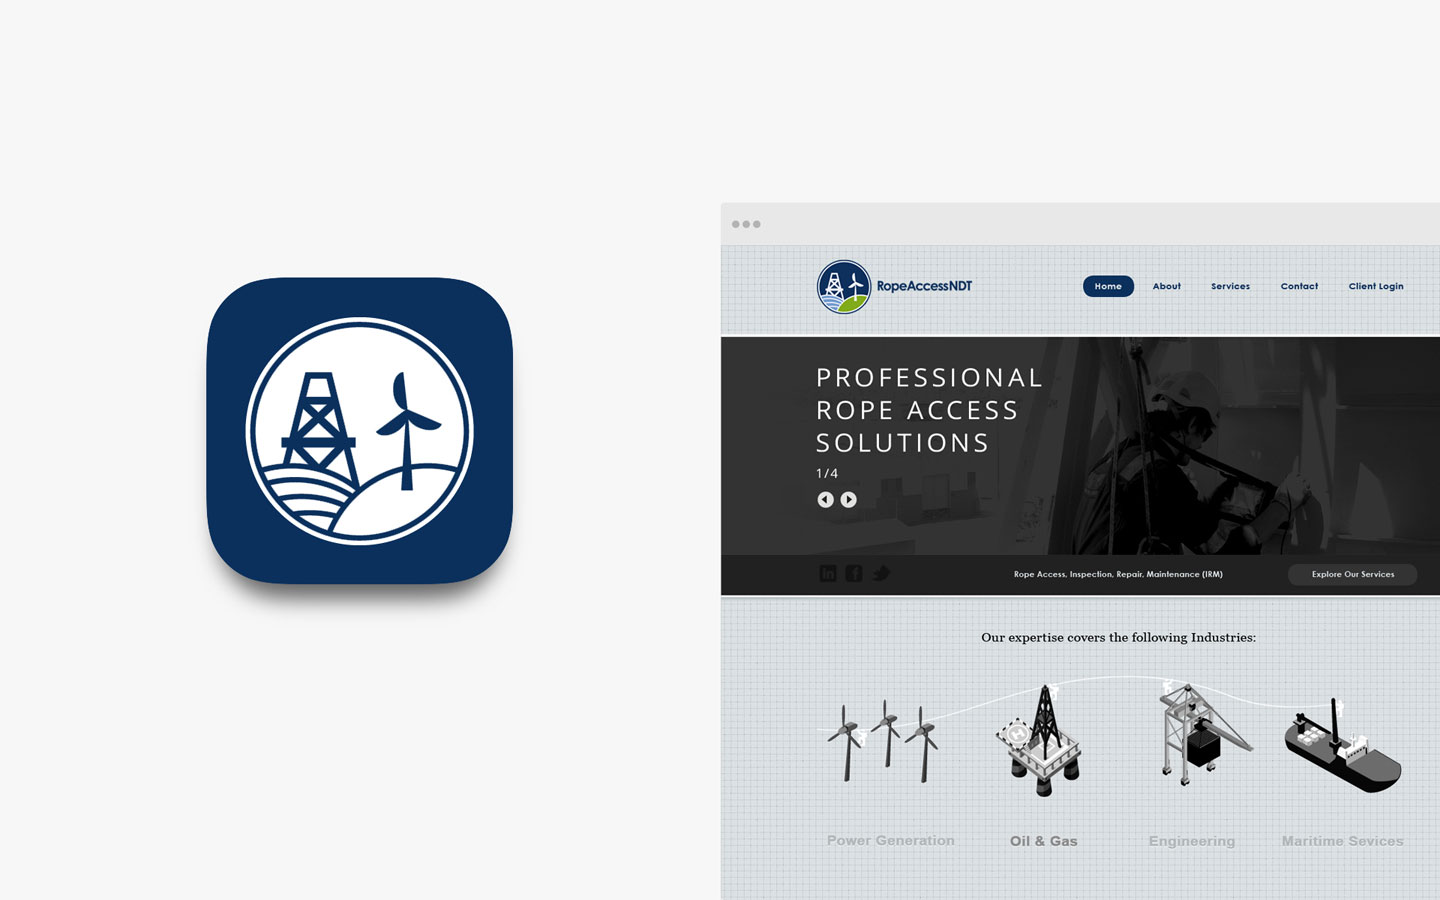 Rope Access NDT, Logo Design in IOS Icon and Website